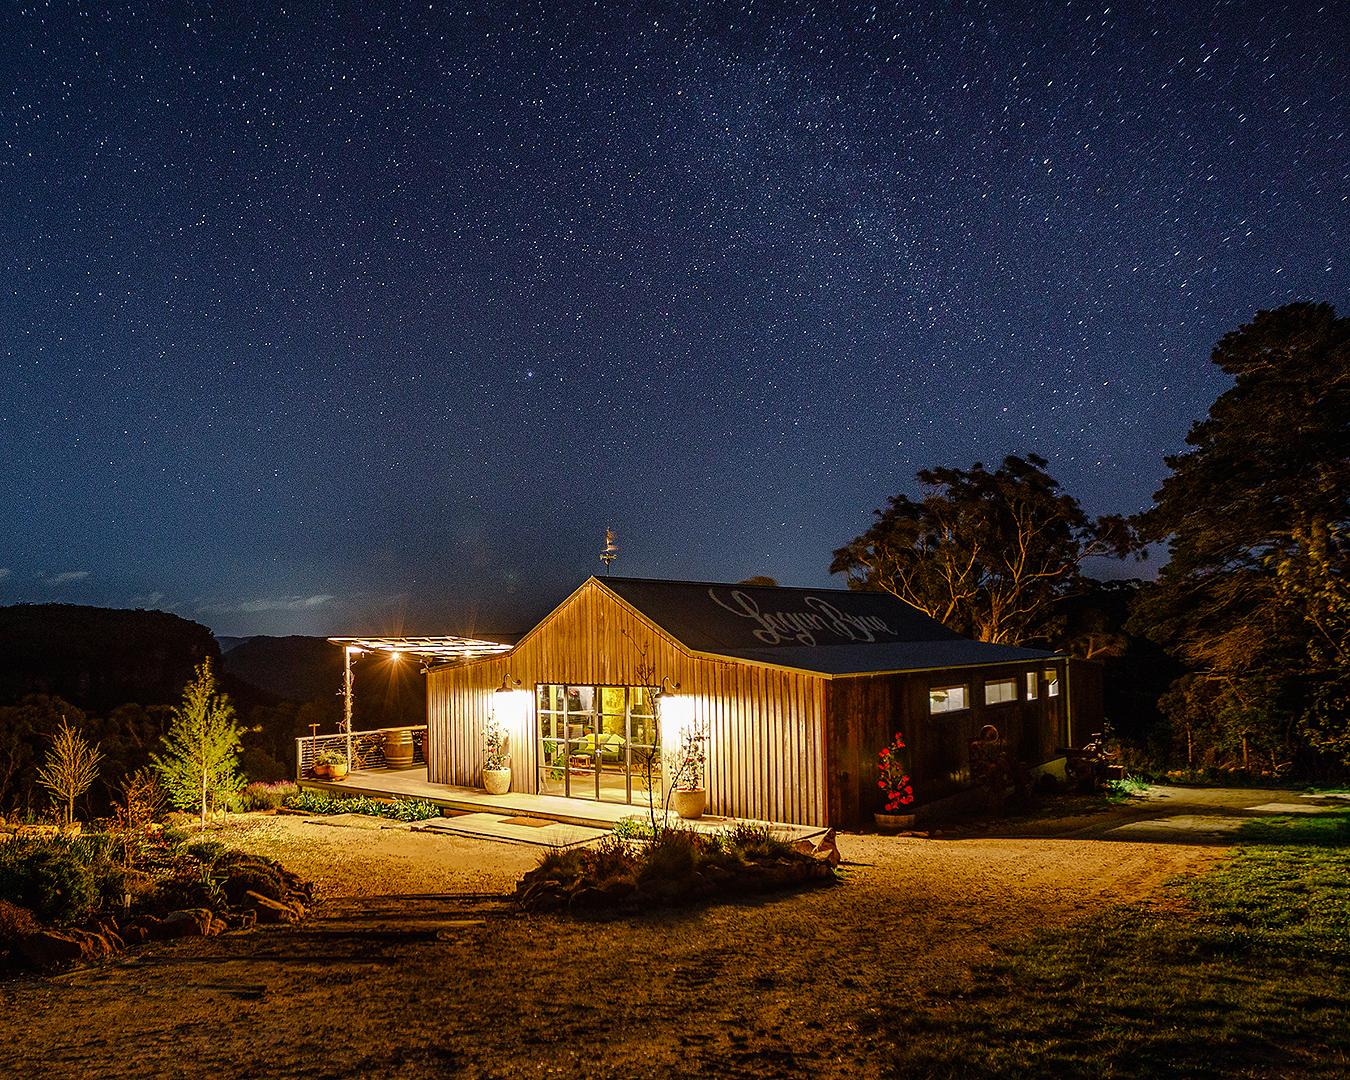 The Orchard Escape under a starry sky.